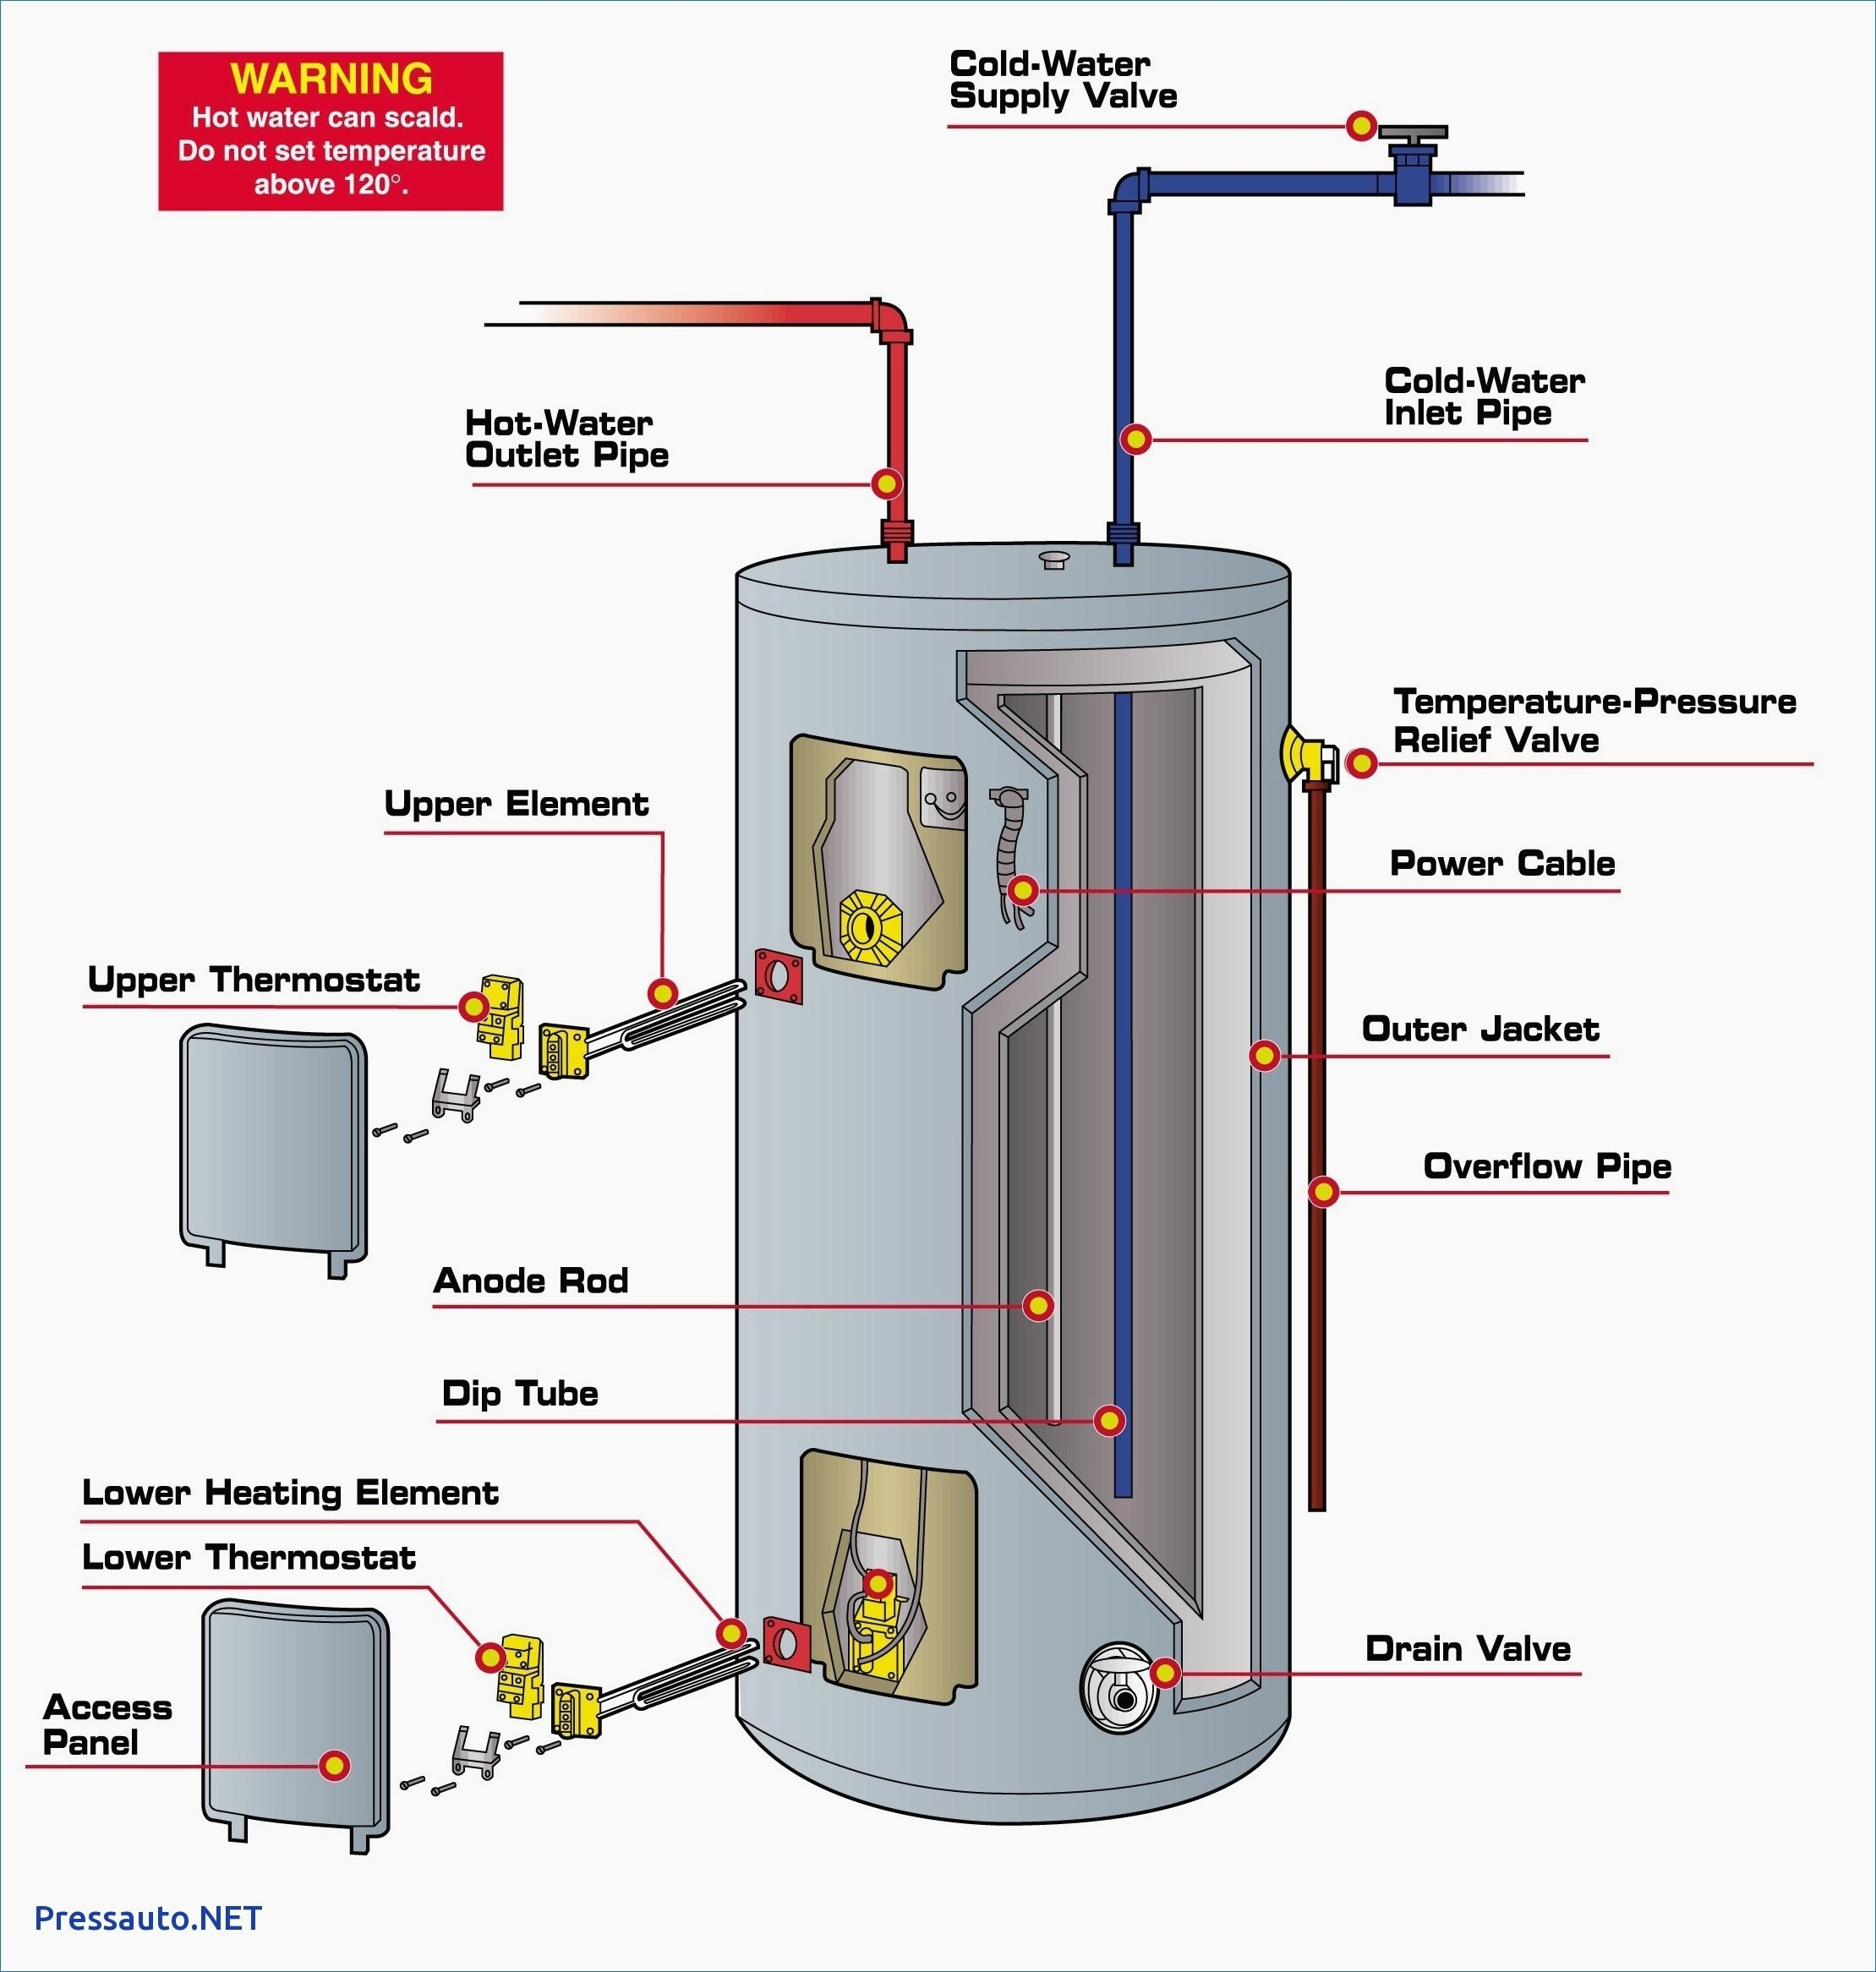 220v hot water heater wiring diagram | free wiring diagram wiring diagram for hot water heater wiring diagram for hot water heater element